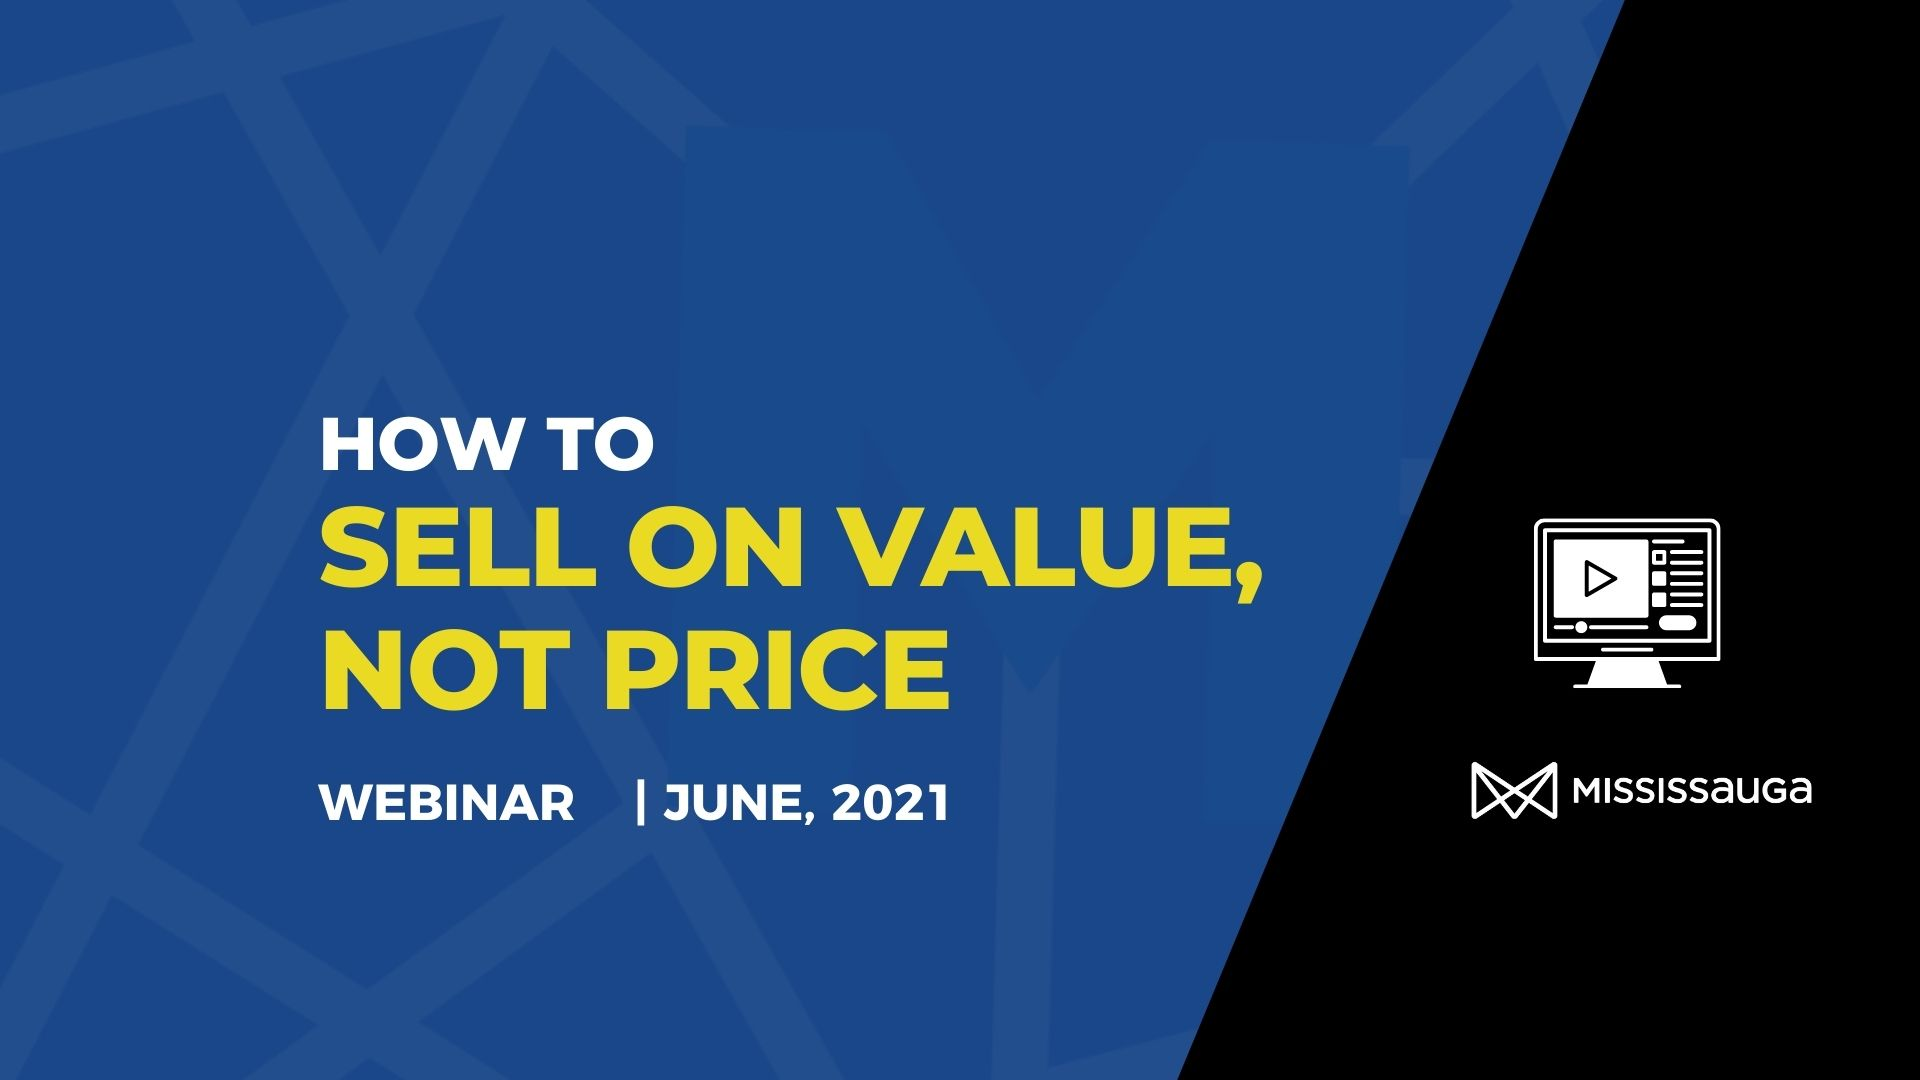 How to Sell on Value, Not Price – Webinar, June 23